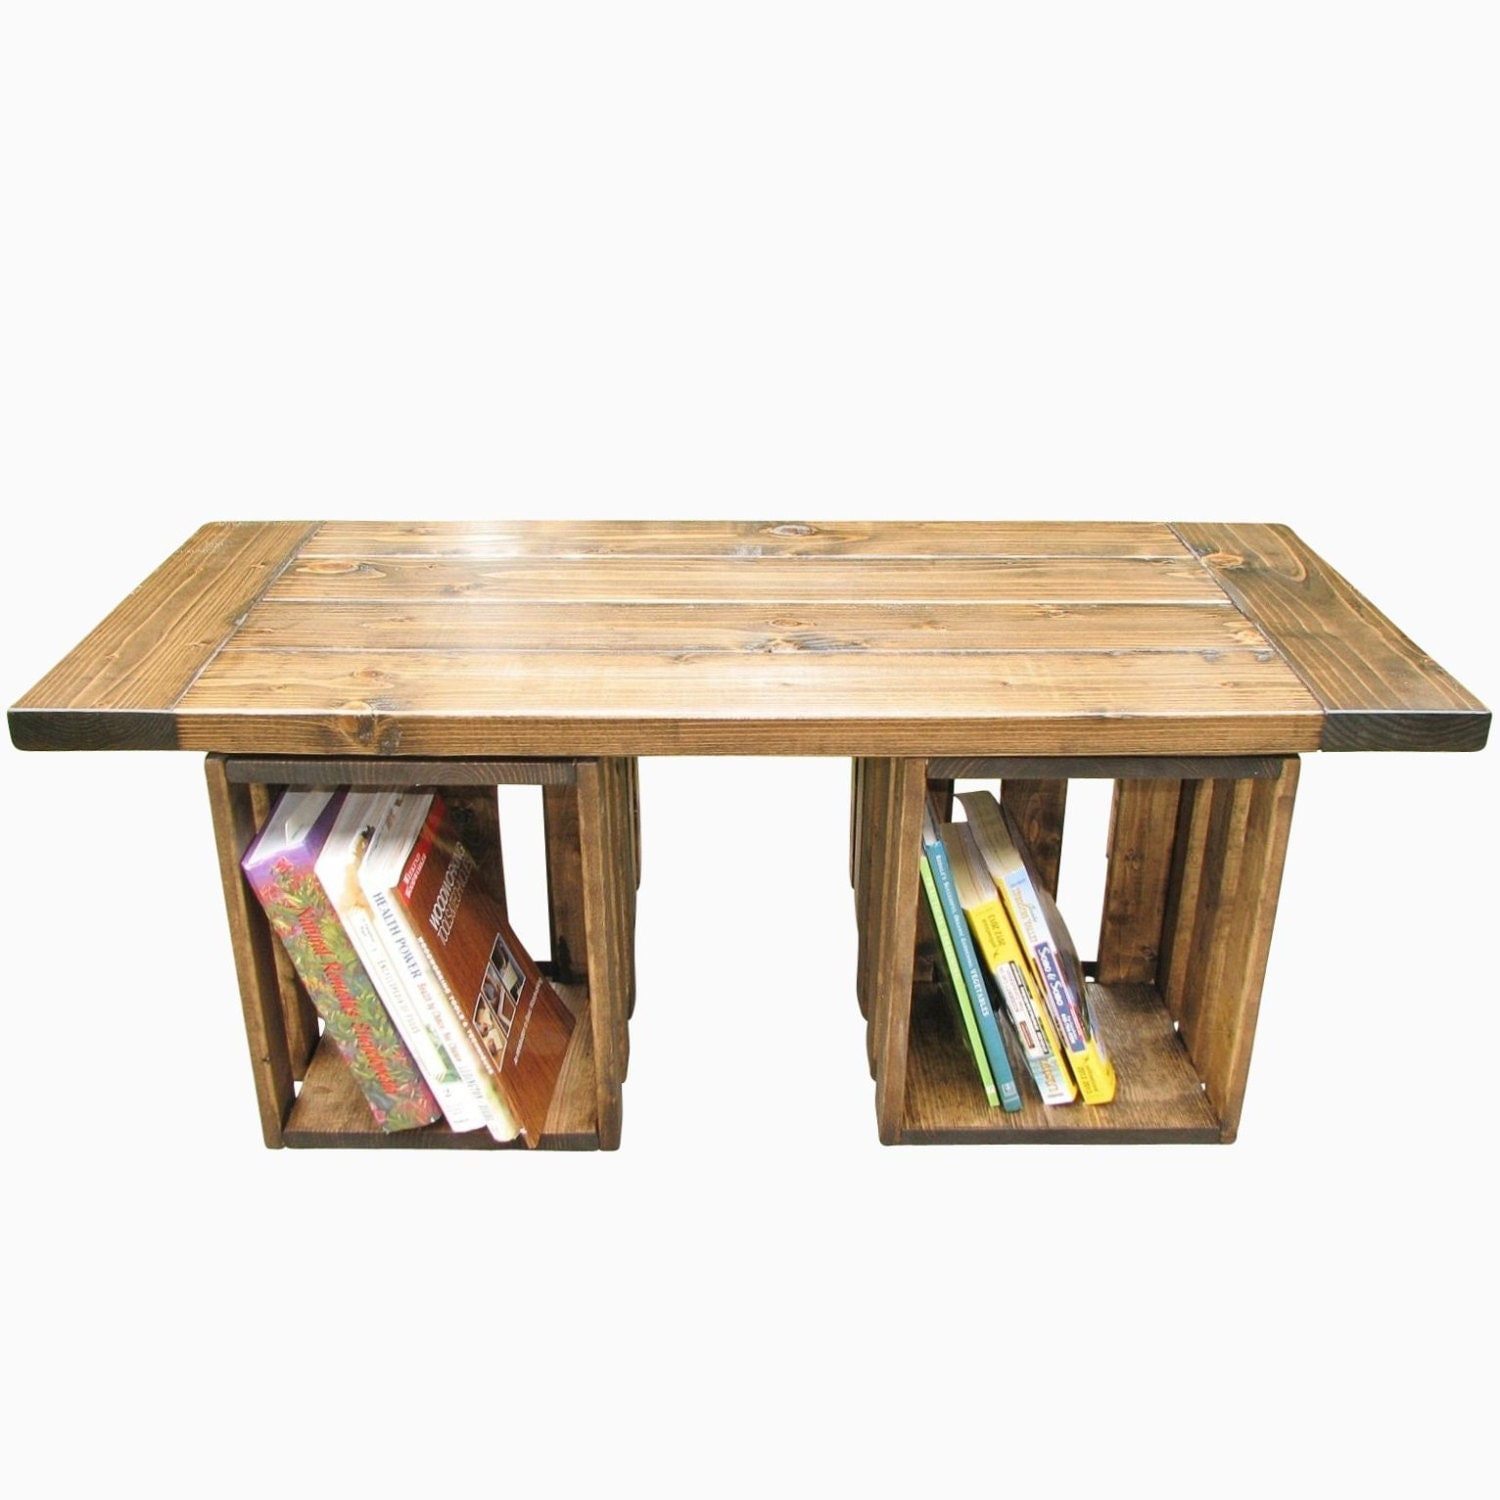 Coffee table farmhouse rustic crate storage country for Crate style coffee table